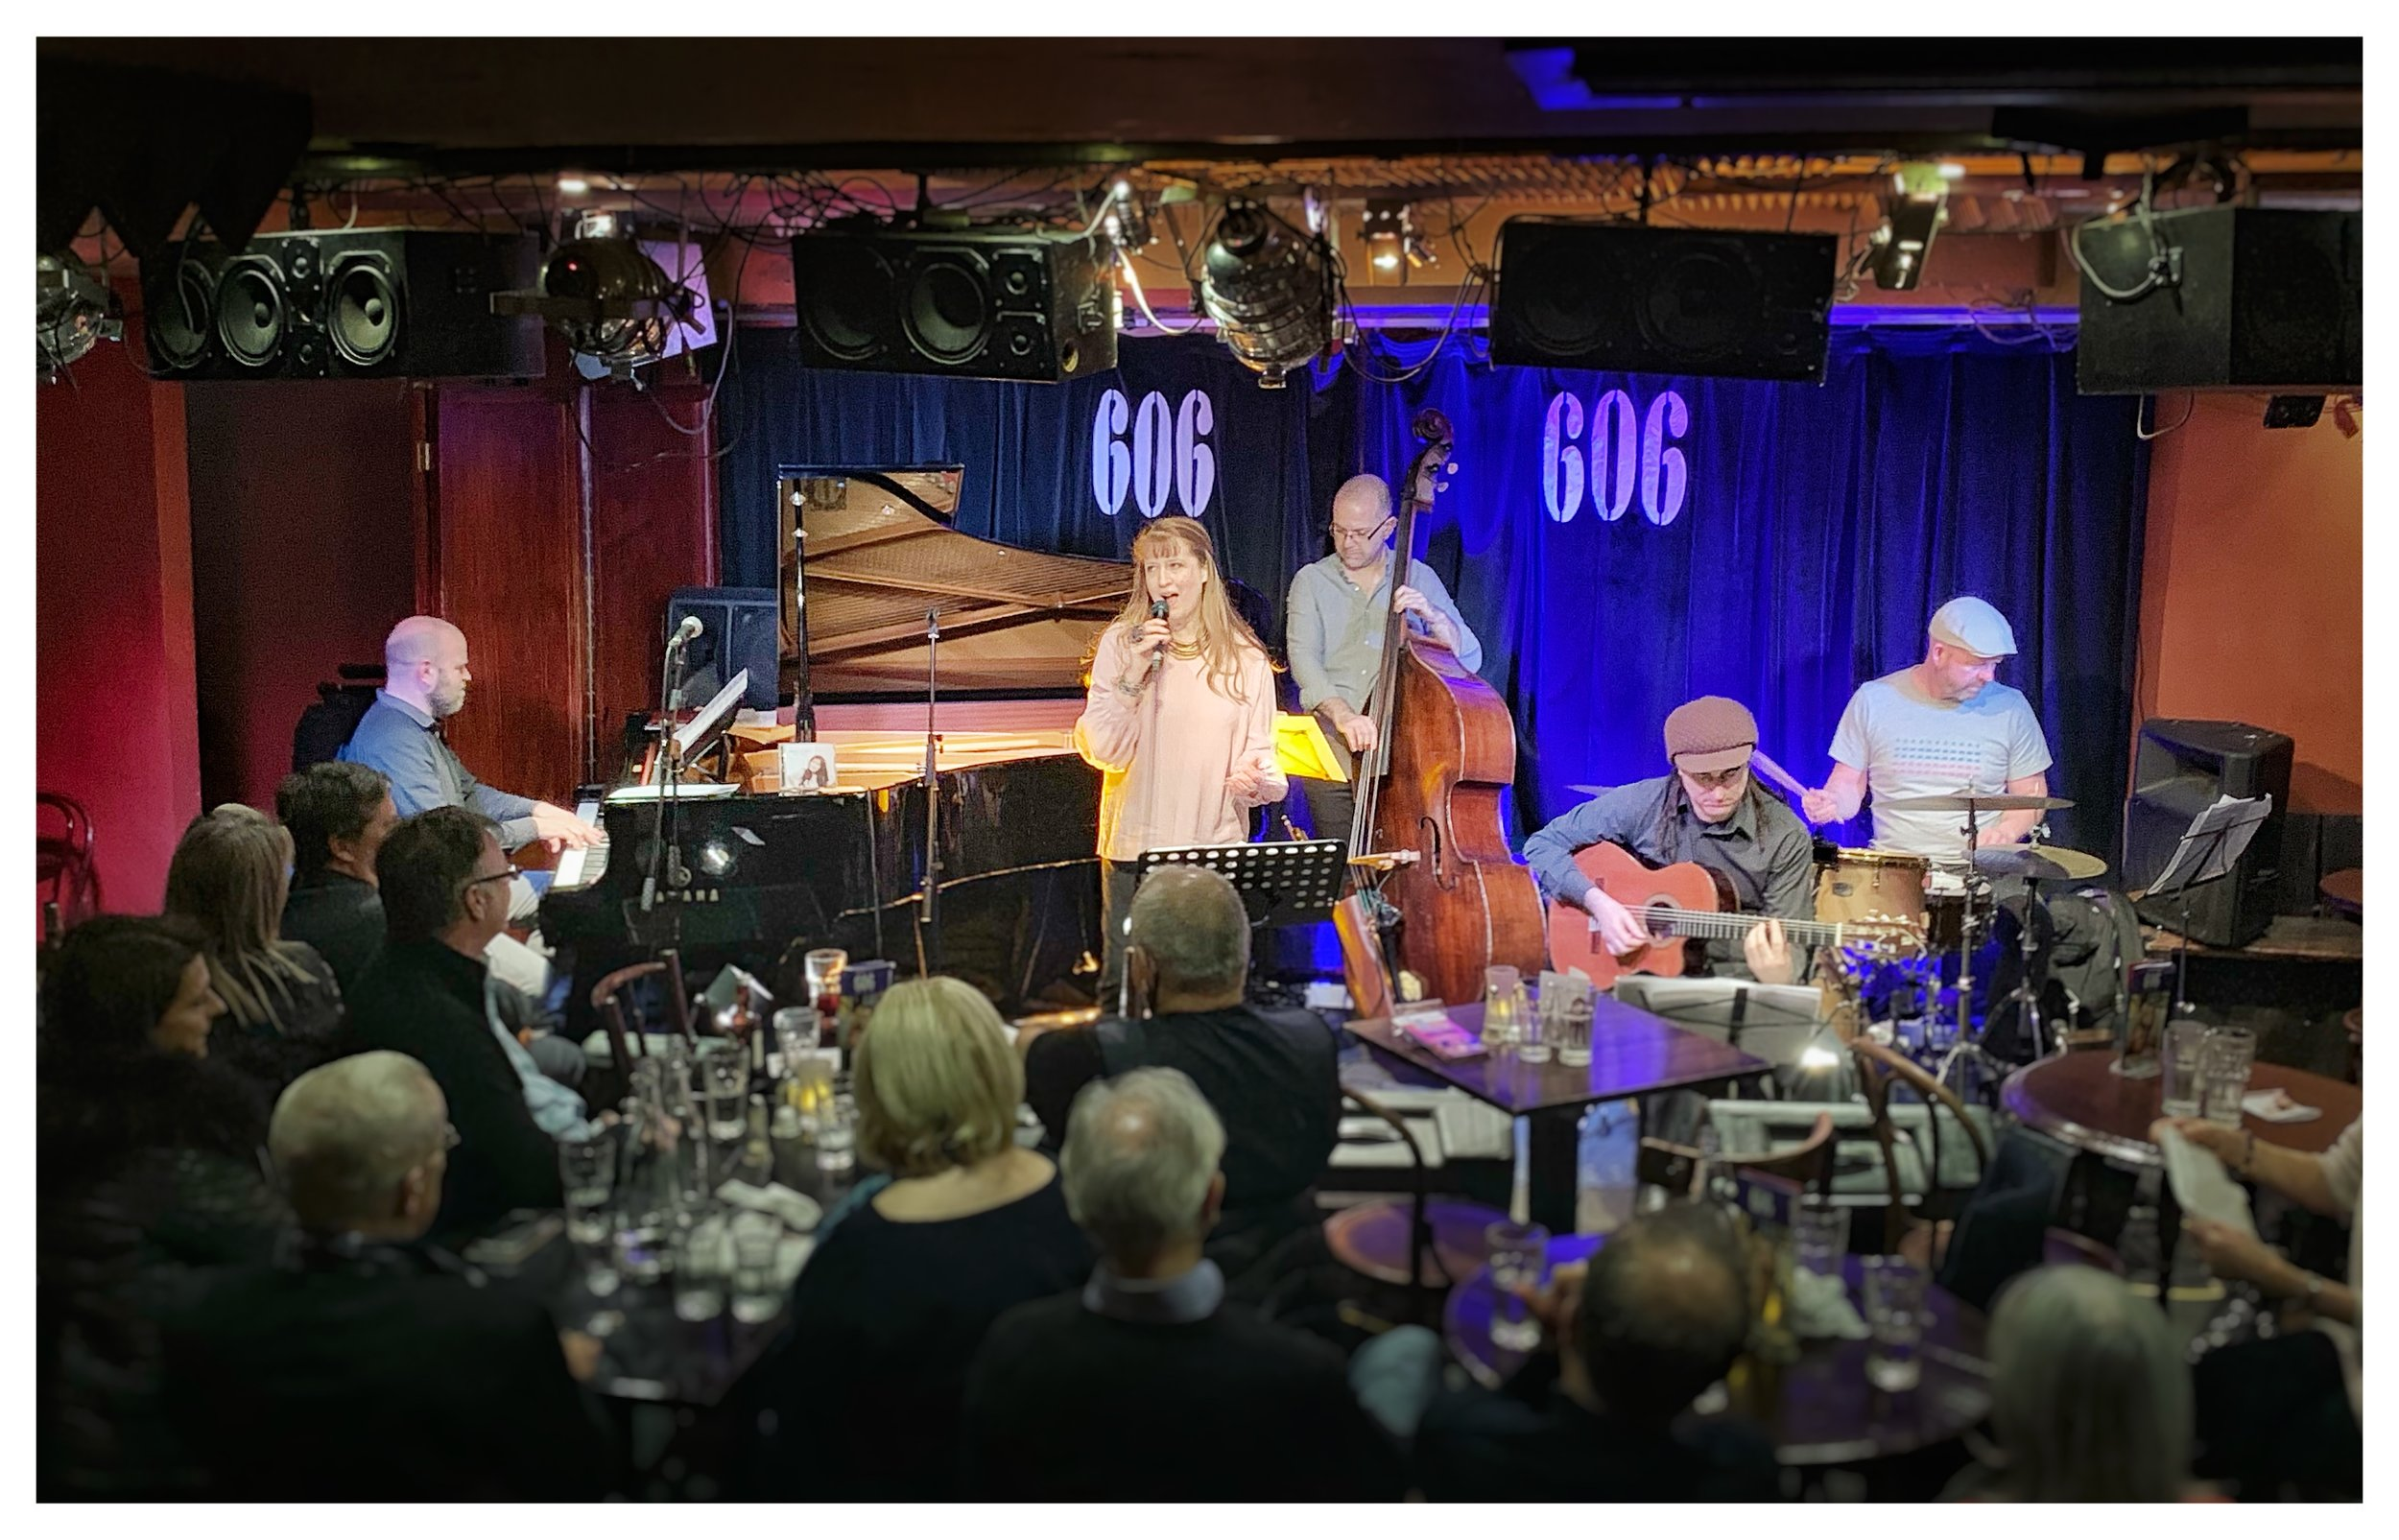 Daniela's Quintet performing at London's 606 Jazz Club 27/1/19